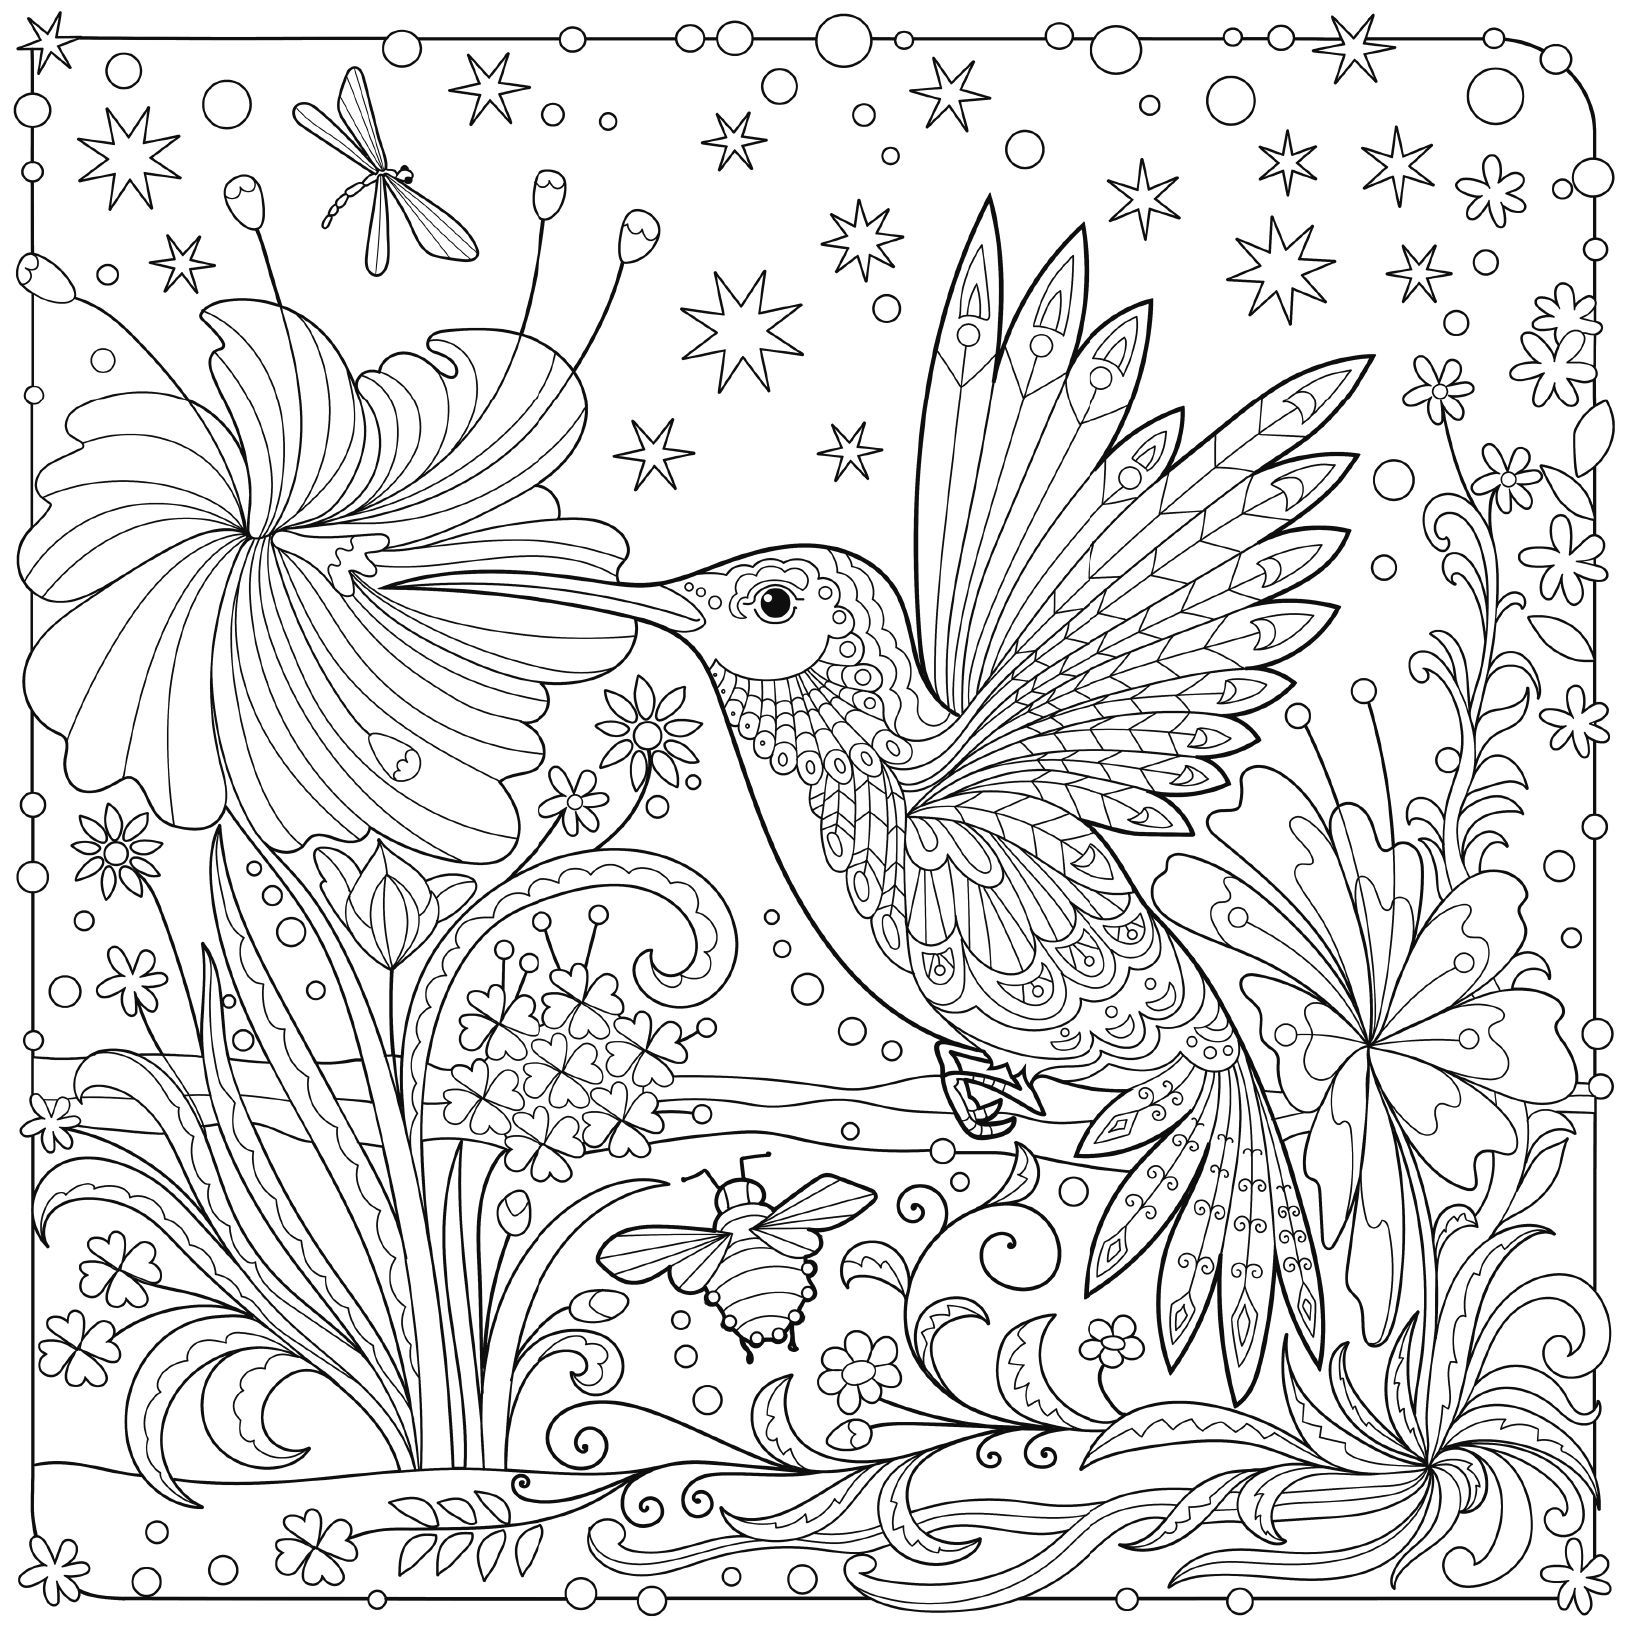 free printable hummingbird coloring pages hummingbird coloring page free printable coloring pages printable free coloring hummingbird pages